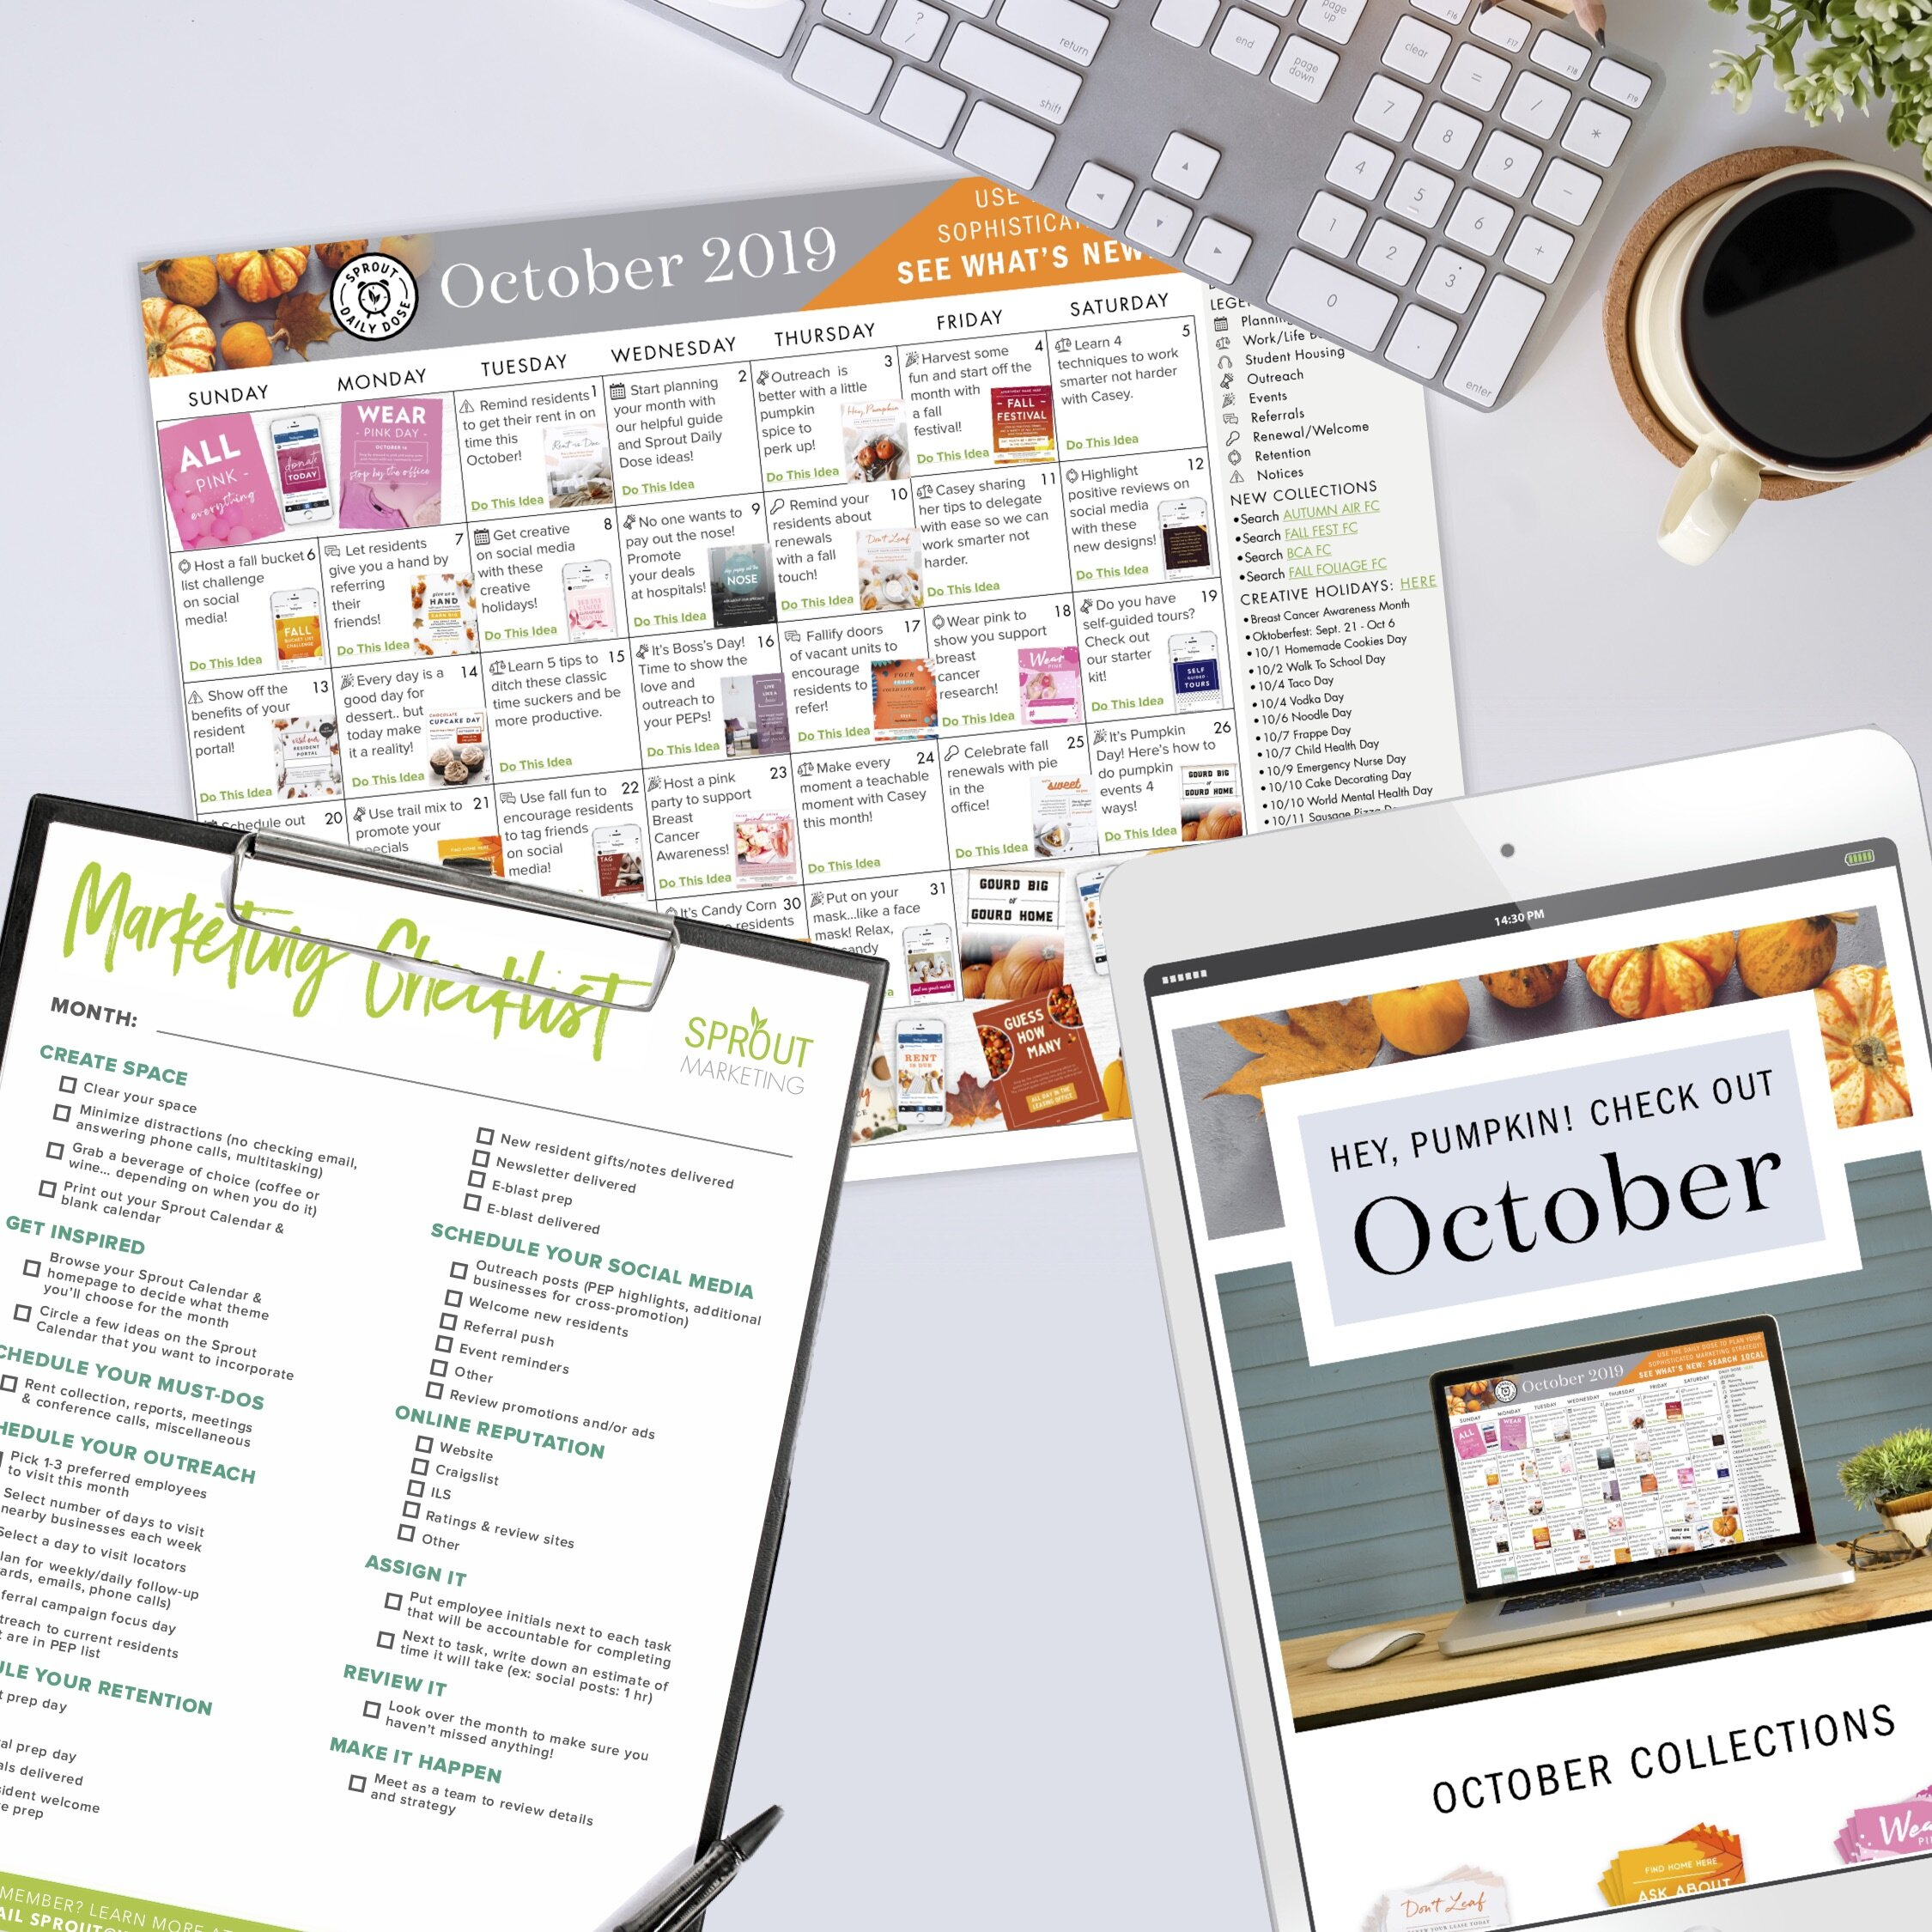 Calendar Kit - *The Sprout Paid-Member calendar has live links to immediately download resources.